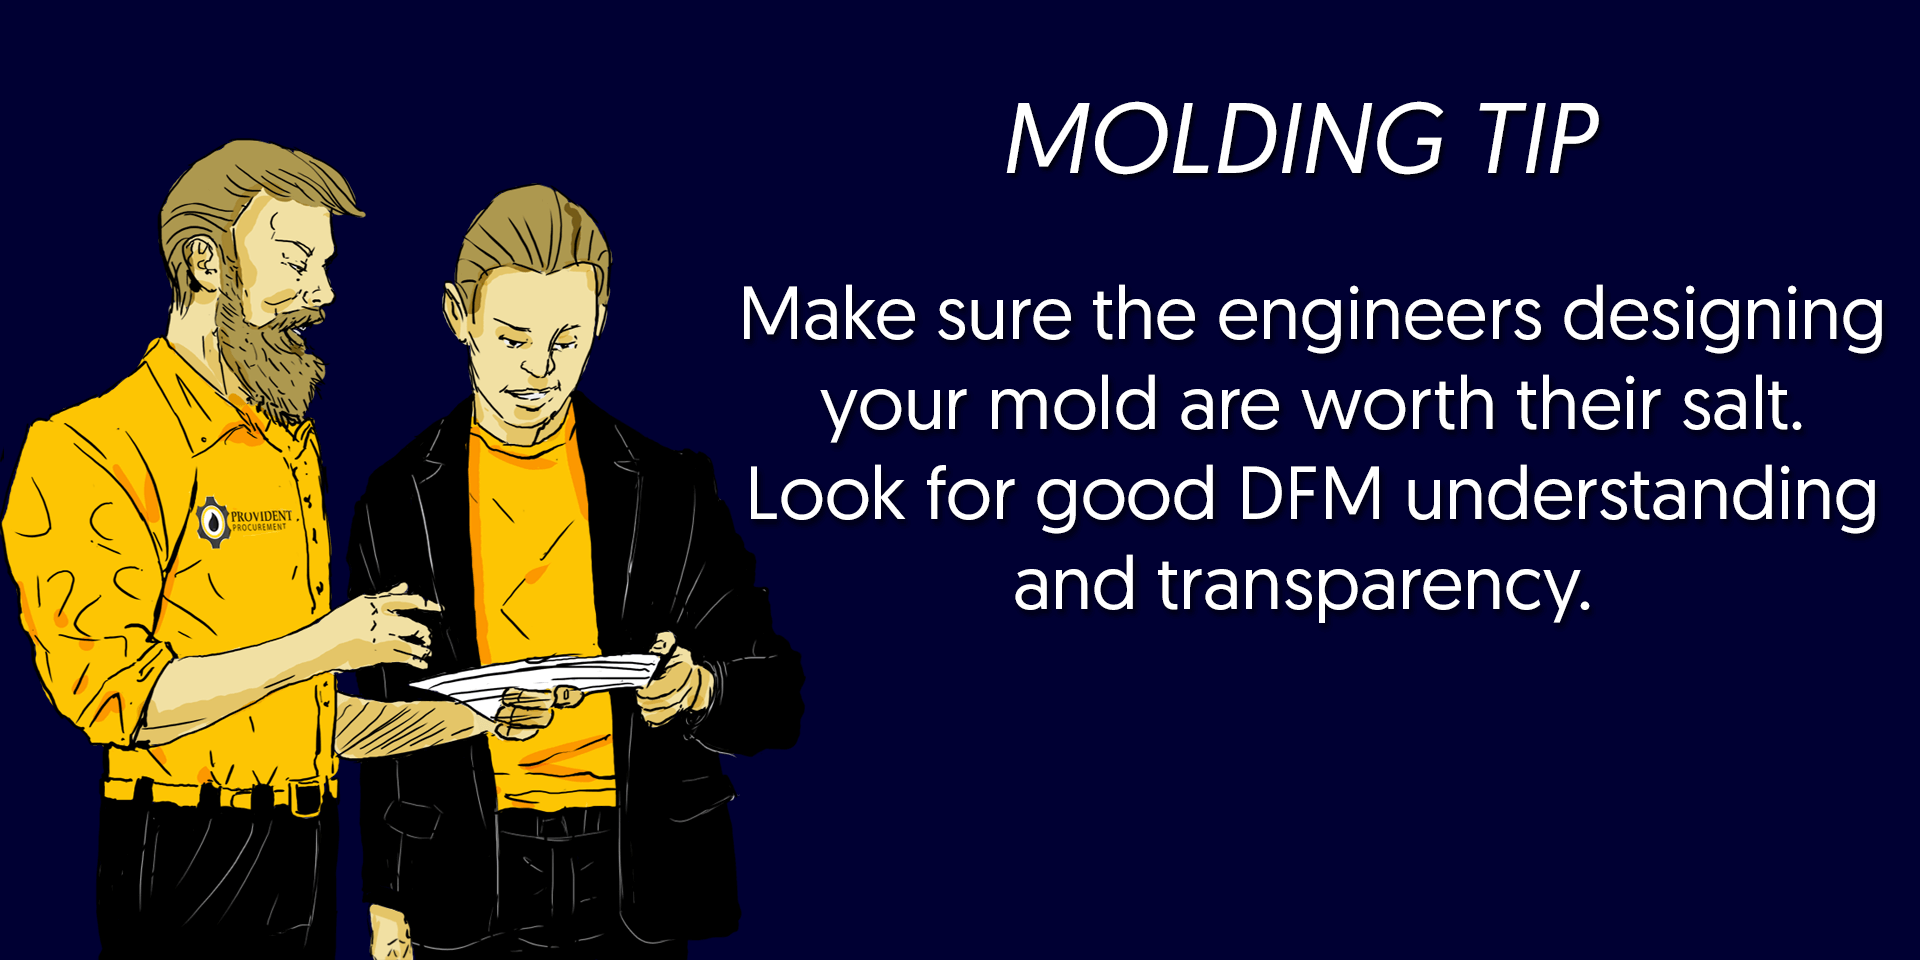 mold design and fabrication tip